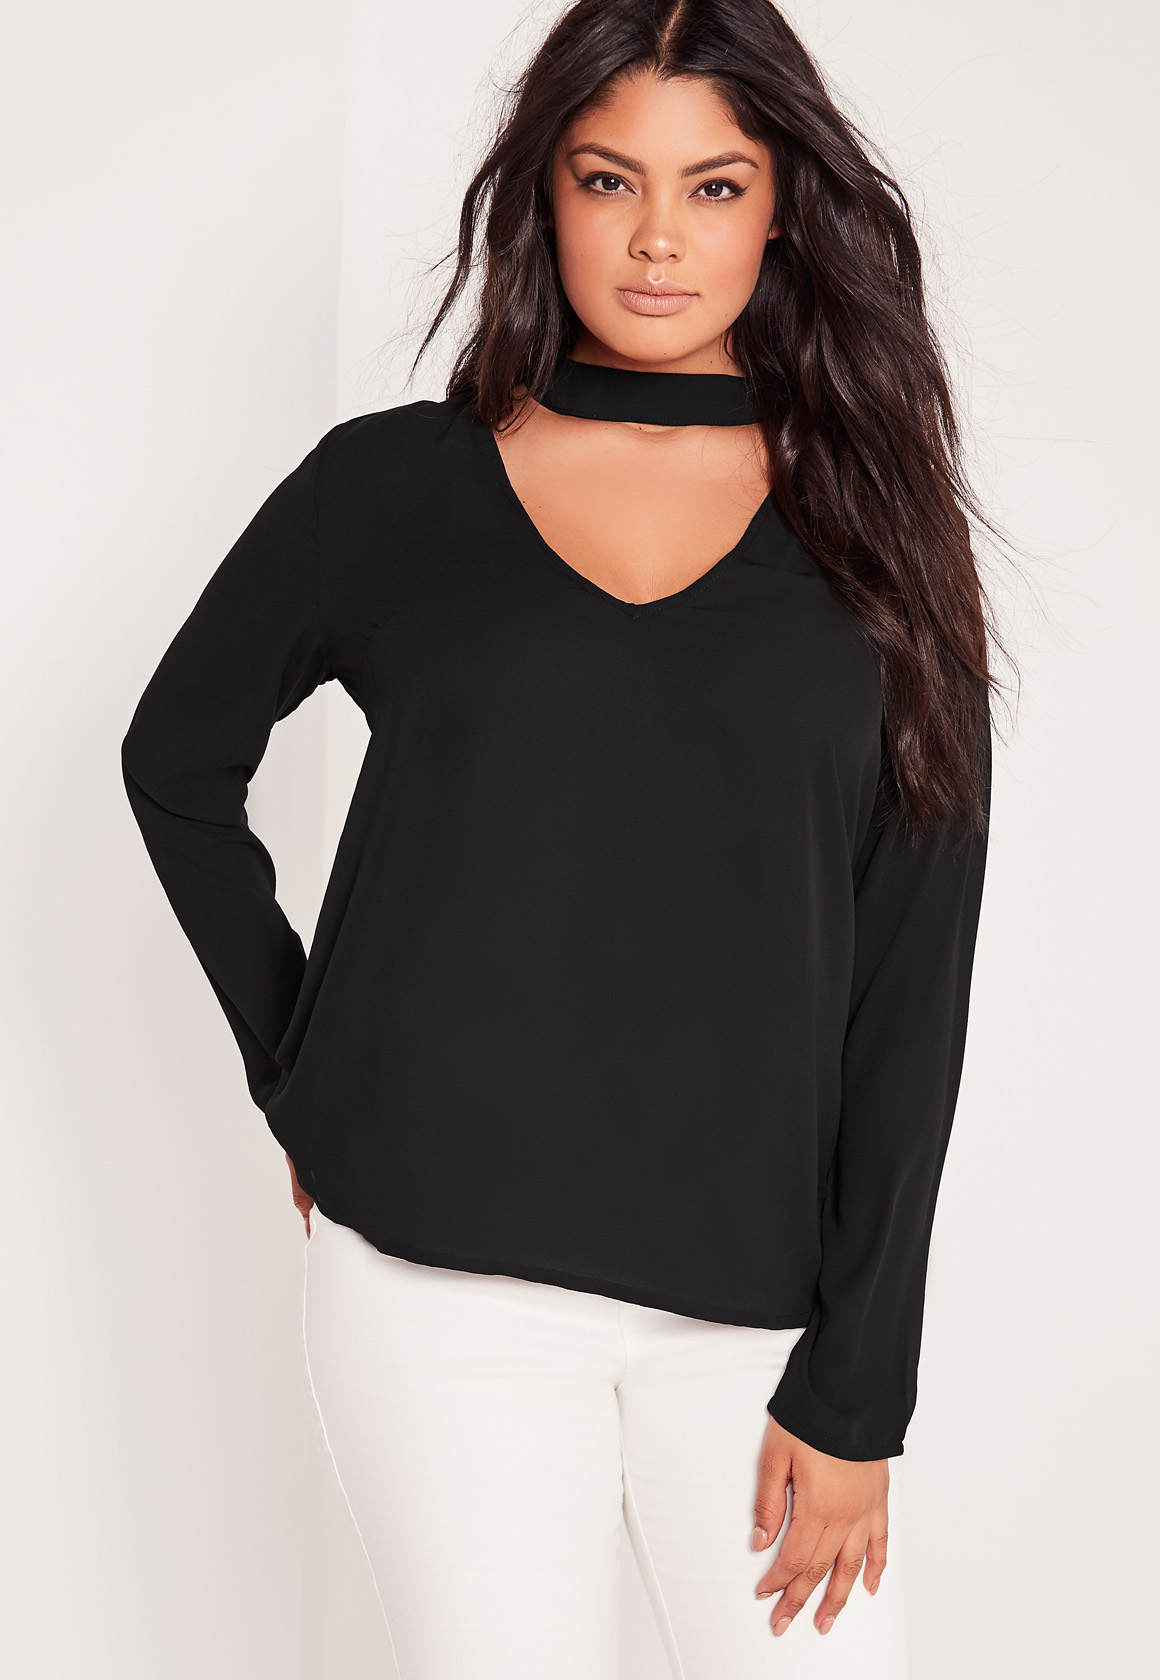 plus size pants and tops photo - 2